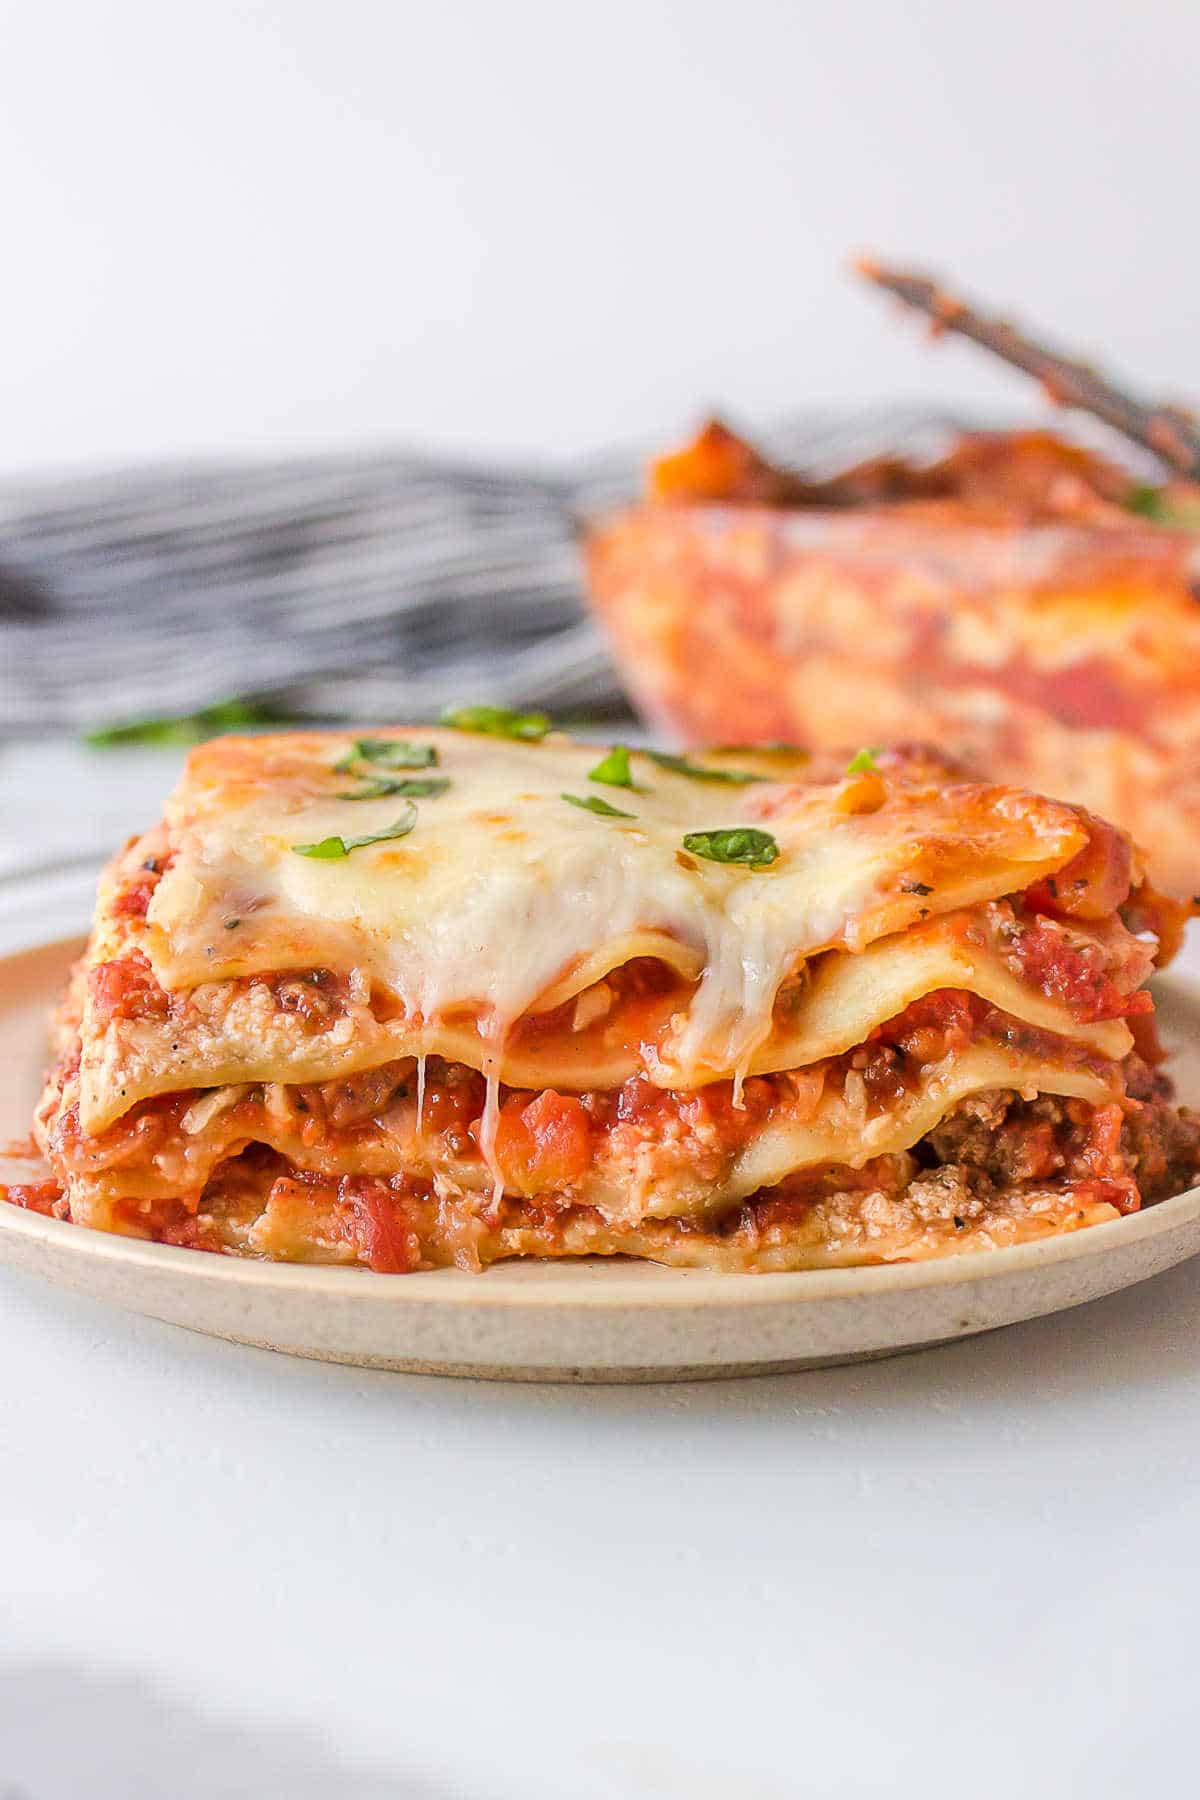 Slice of baked lasagna on a white plate.